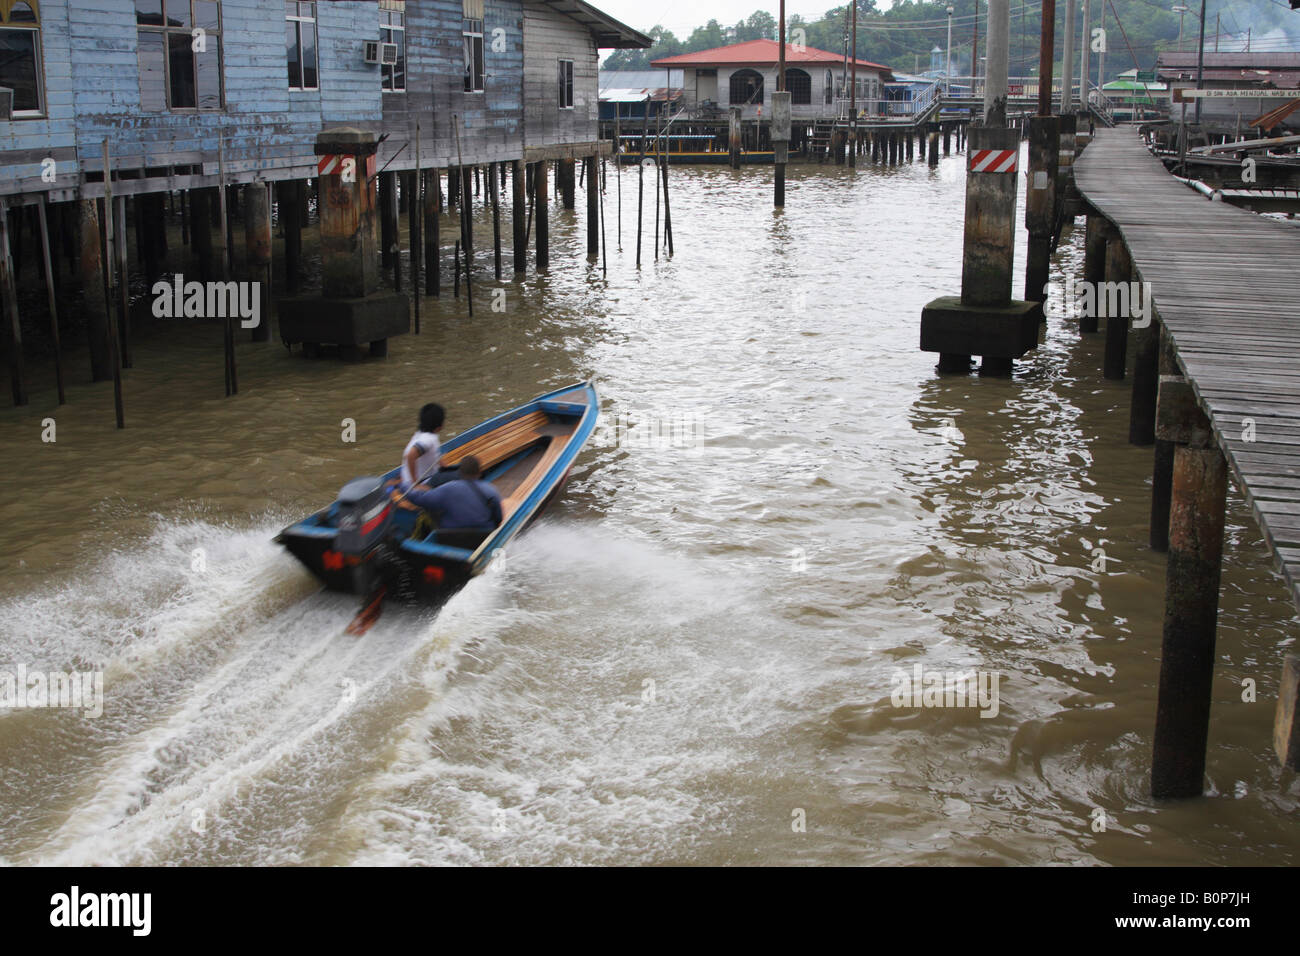 Water Taxi Going Through Kampung Ayer, Brunei - Stock Image